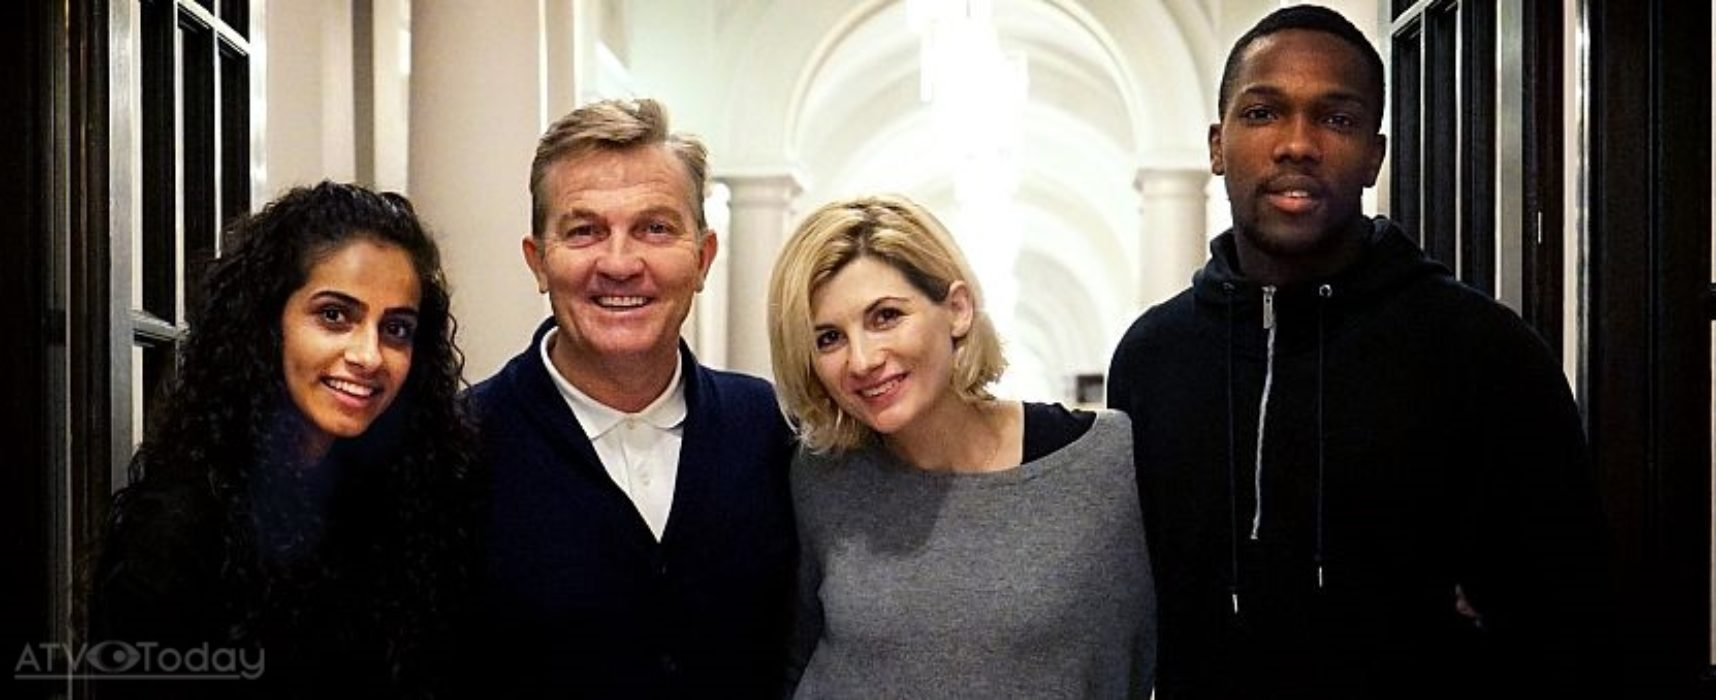 Bradley Walsh, Mandip Gill and Tosin Cole to play companions in Doctor Who